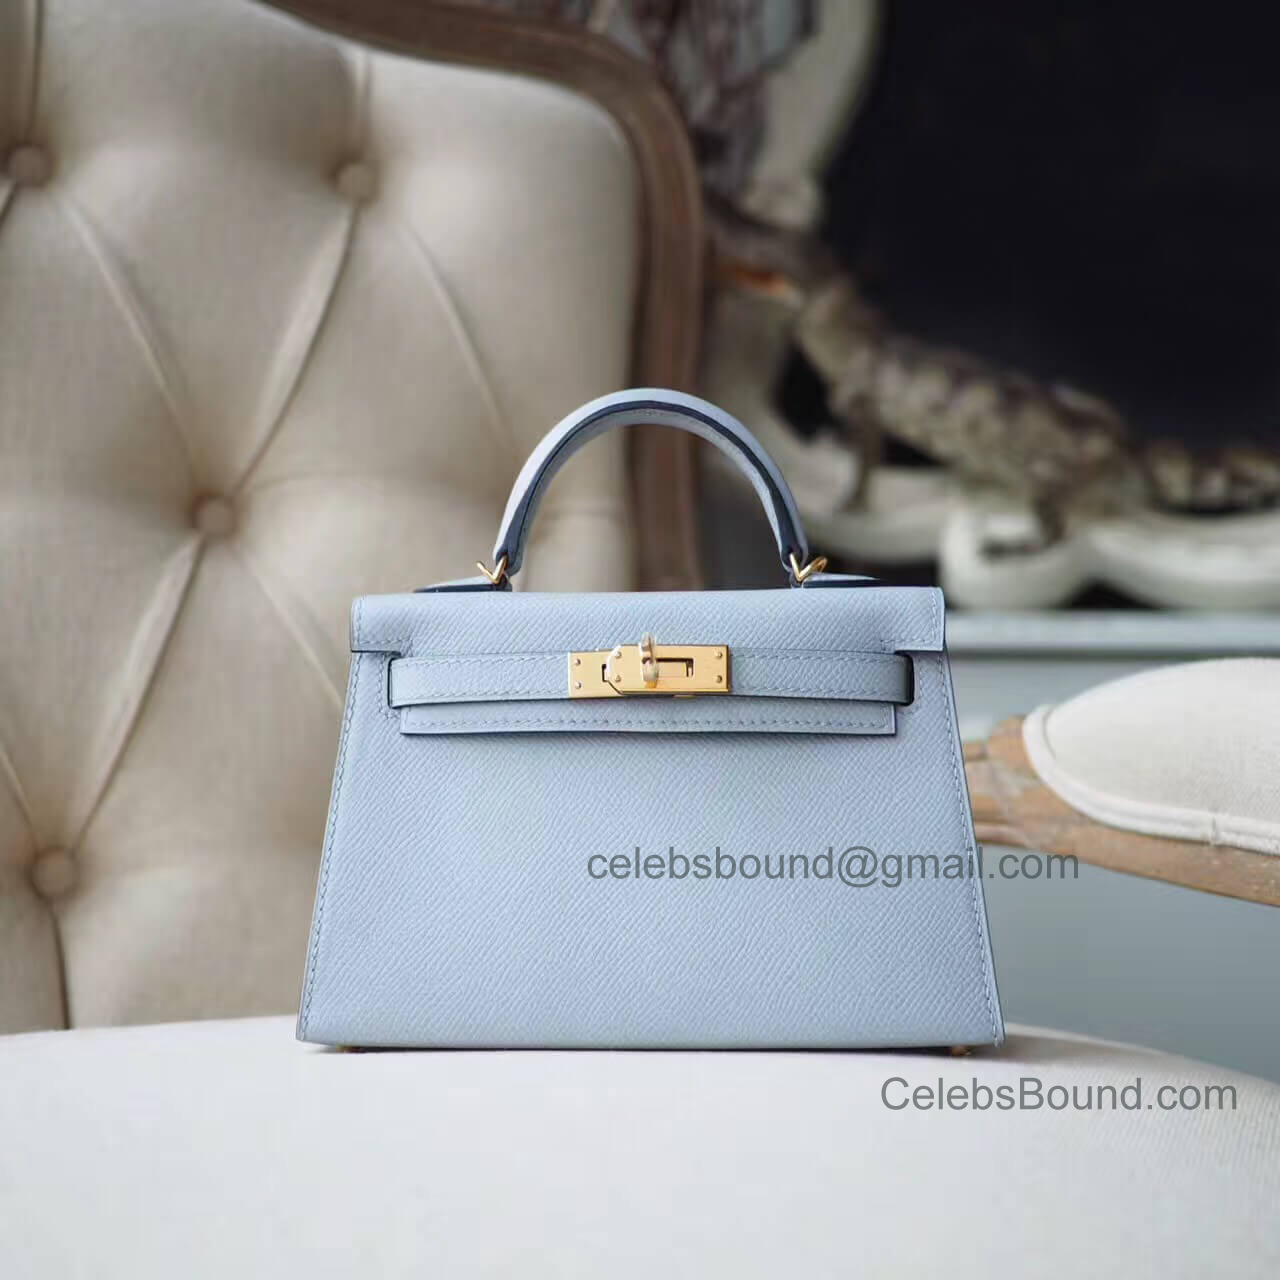 Hermes Mini Kelly 20 II Bag in 8u Blue Glacier Epsom GHW